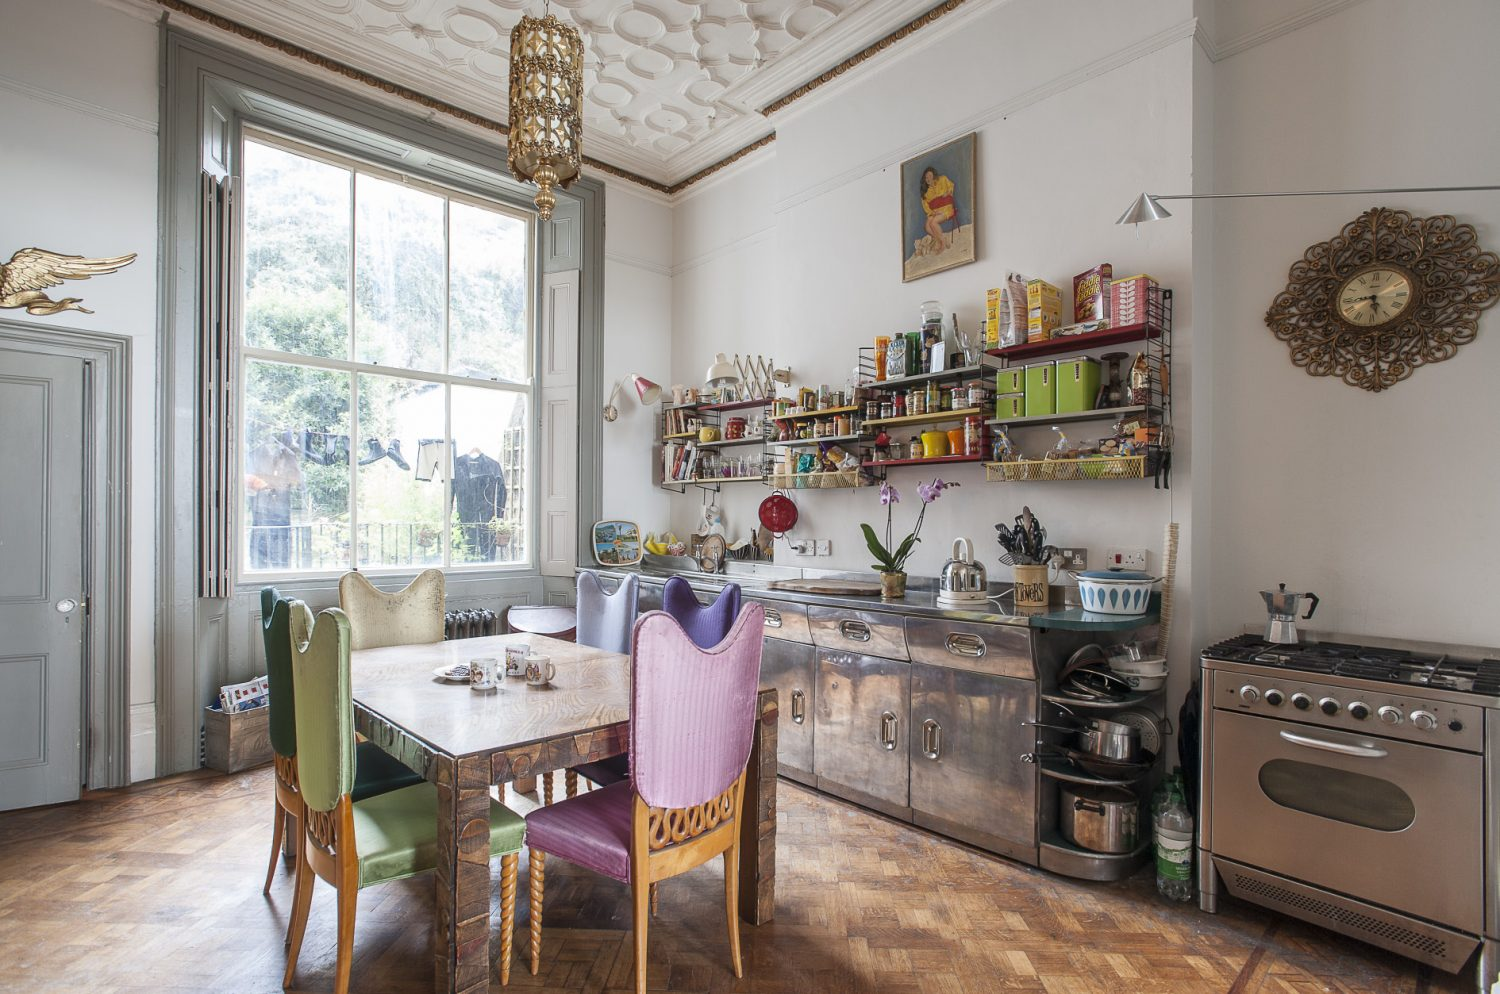 The kitchen gathers around a superb American Brutalist dining table in tiger oak made by US designer Lane above which hangs a tubular and ornate gilt light...